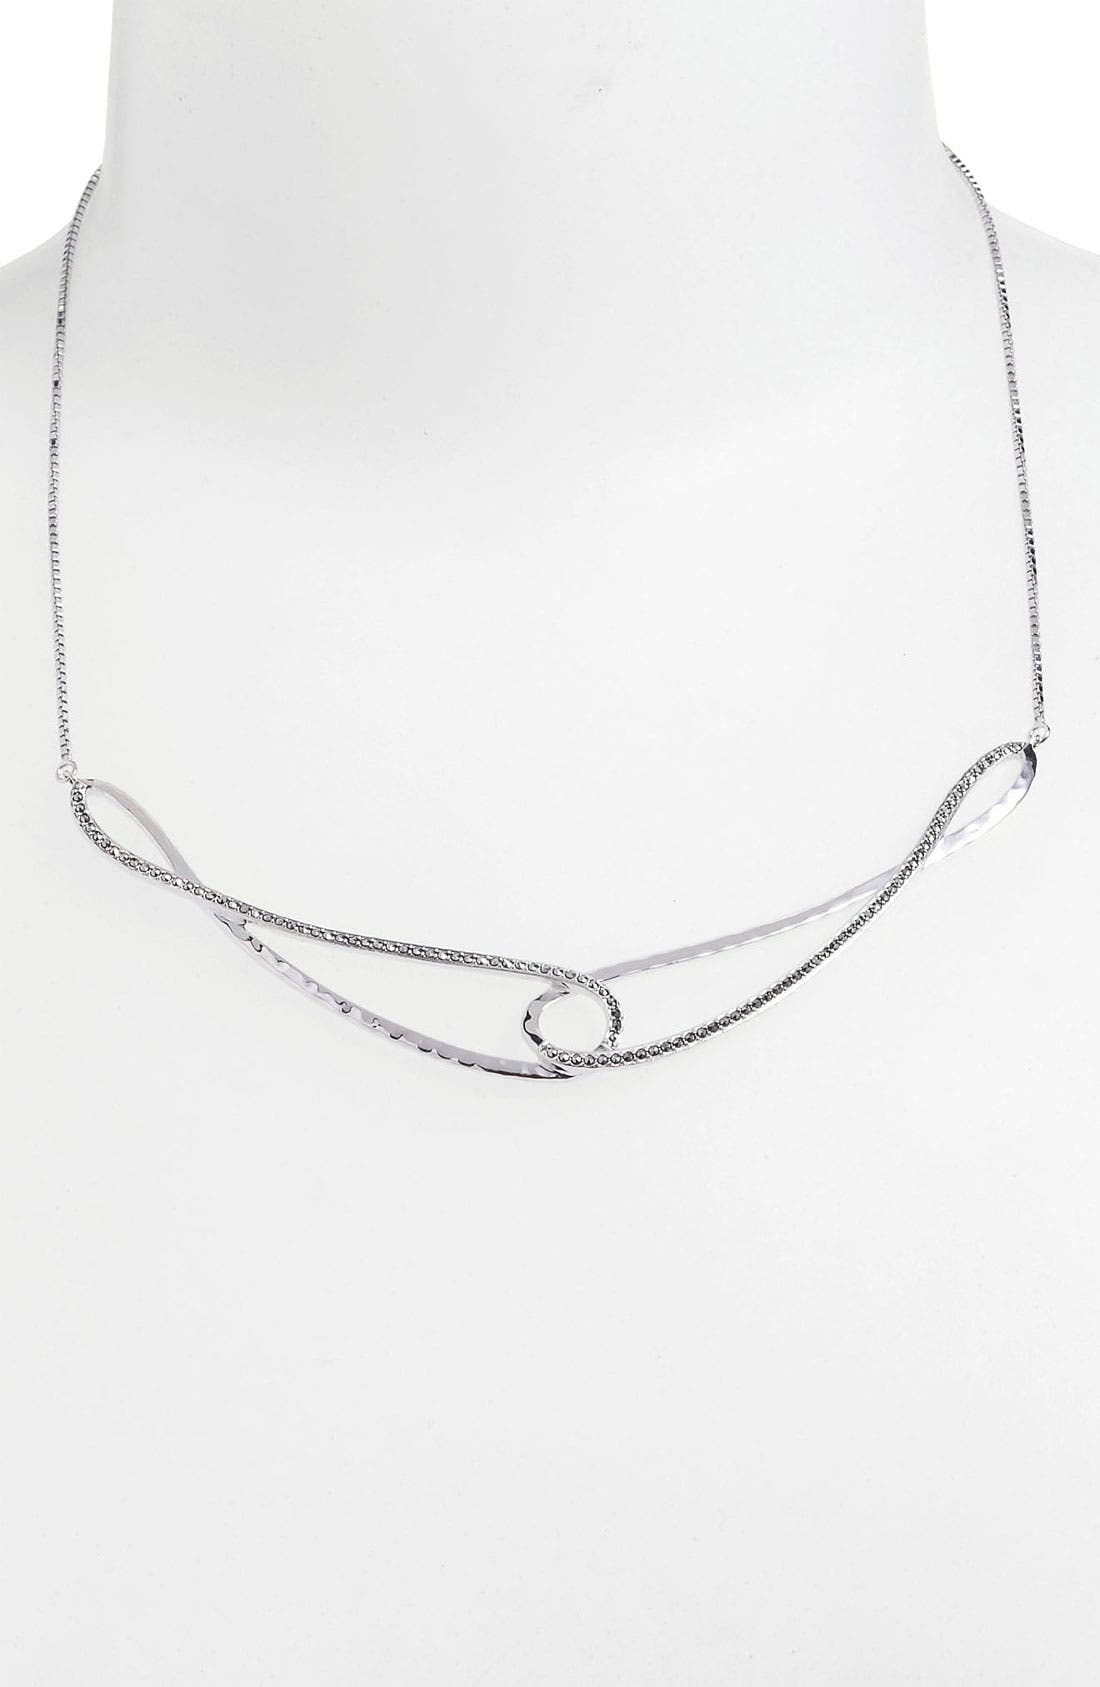 Main Image - Judith Jack 'Fluidity' Frontal Necklace